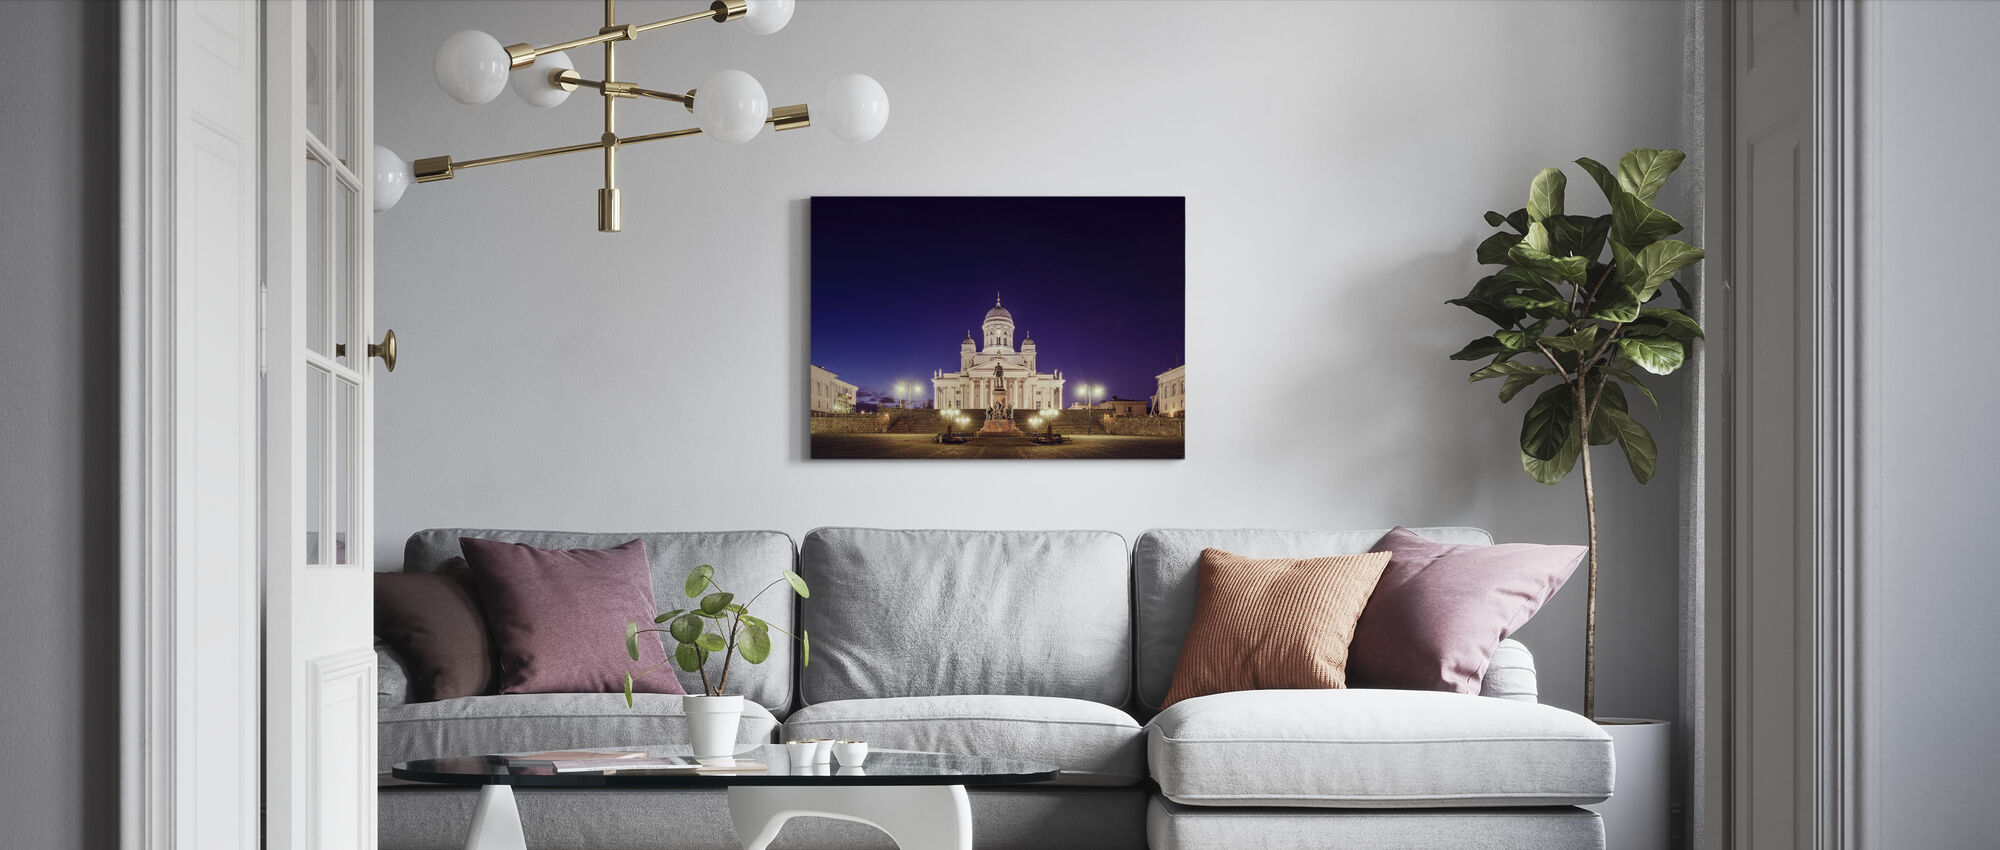 Cathedral - Canvas print - Living Room